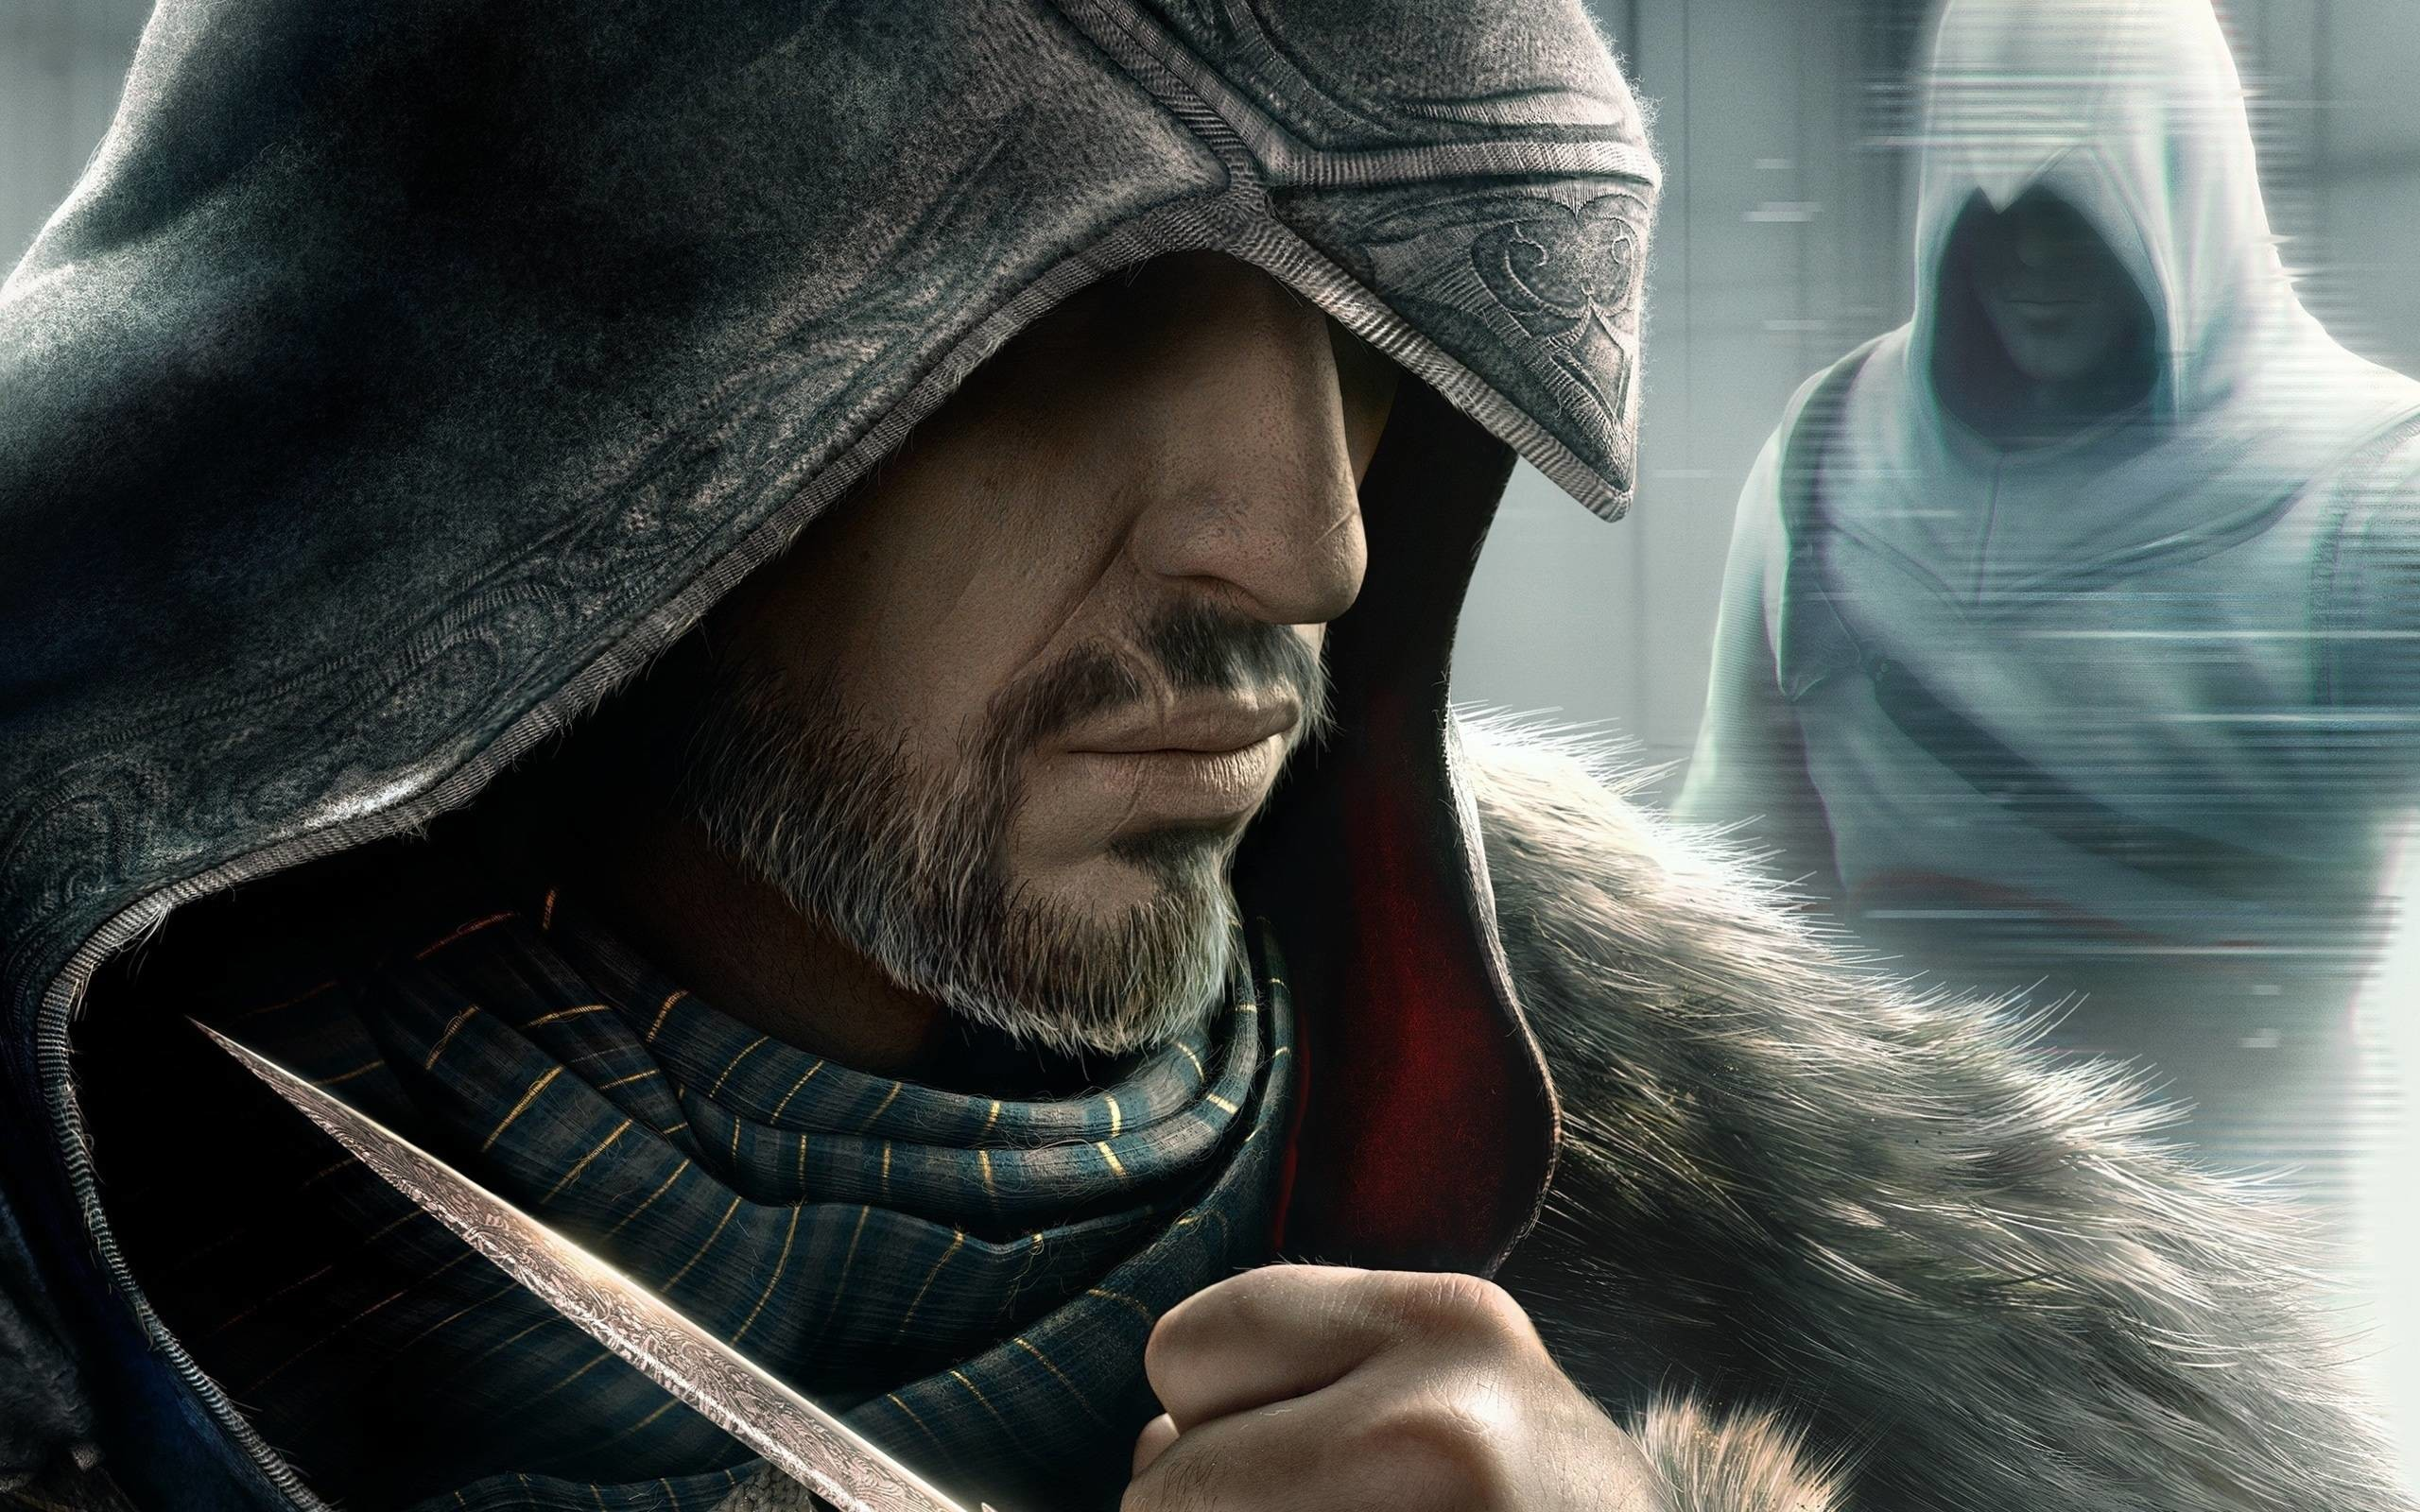 Download Hd Game Wallpapers 1080p